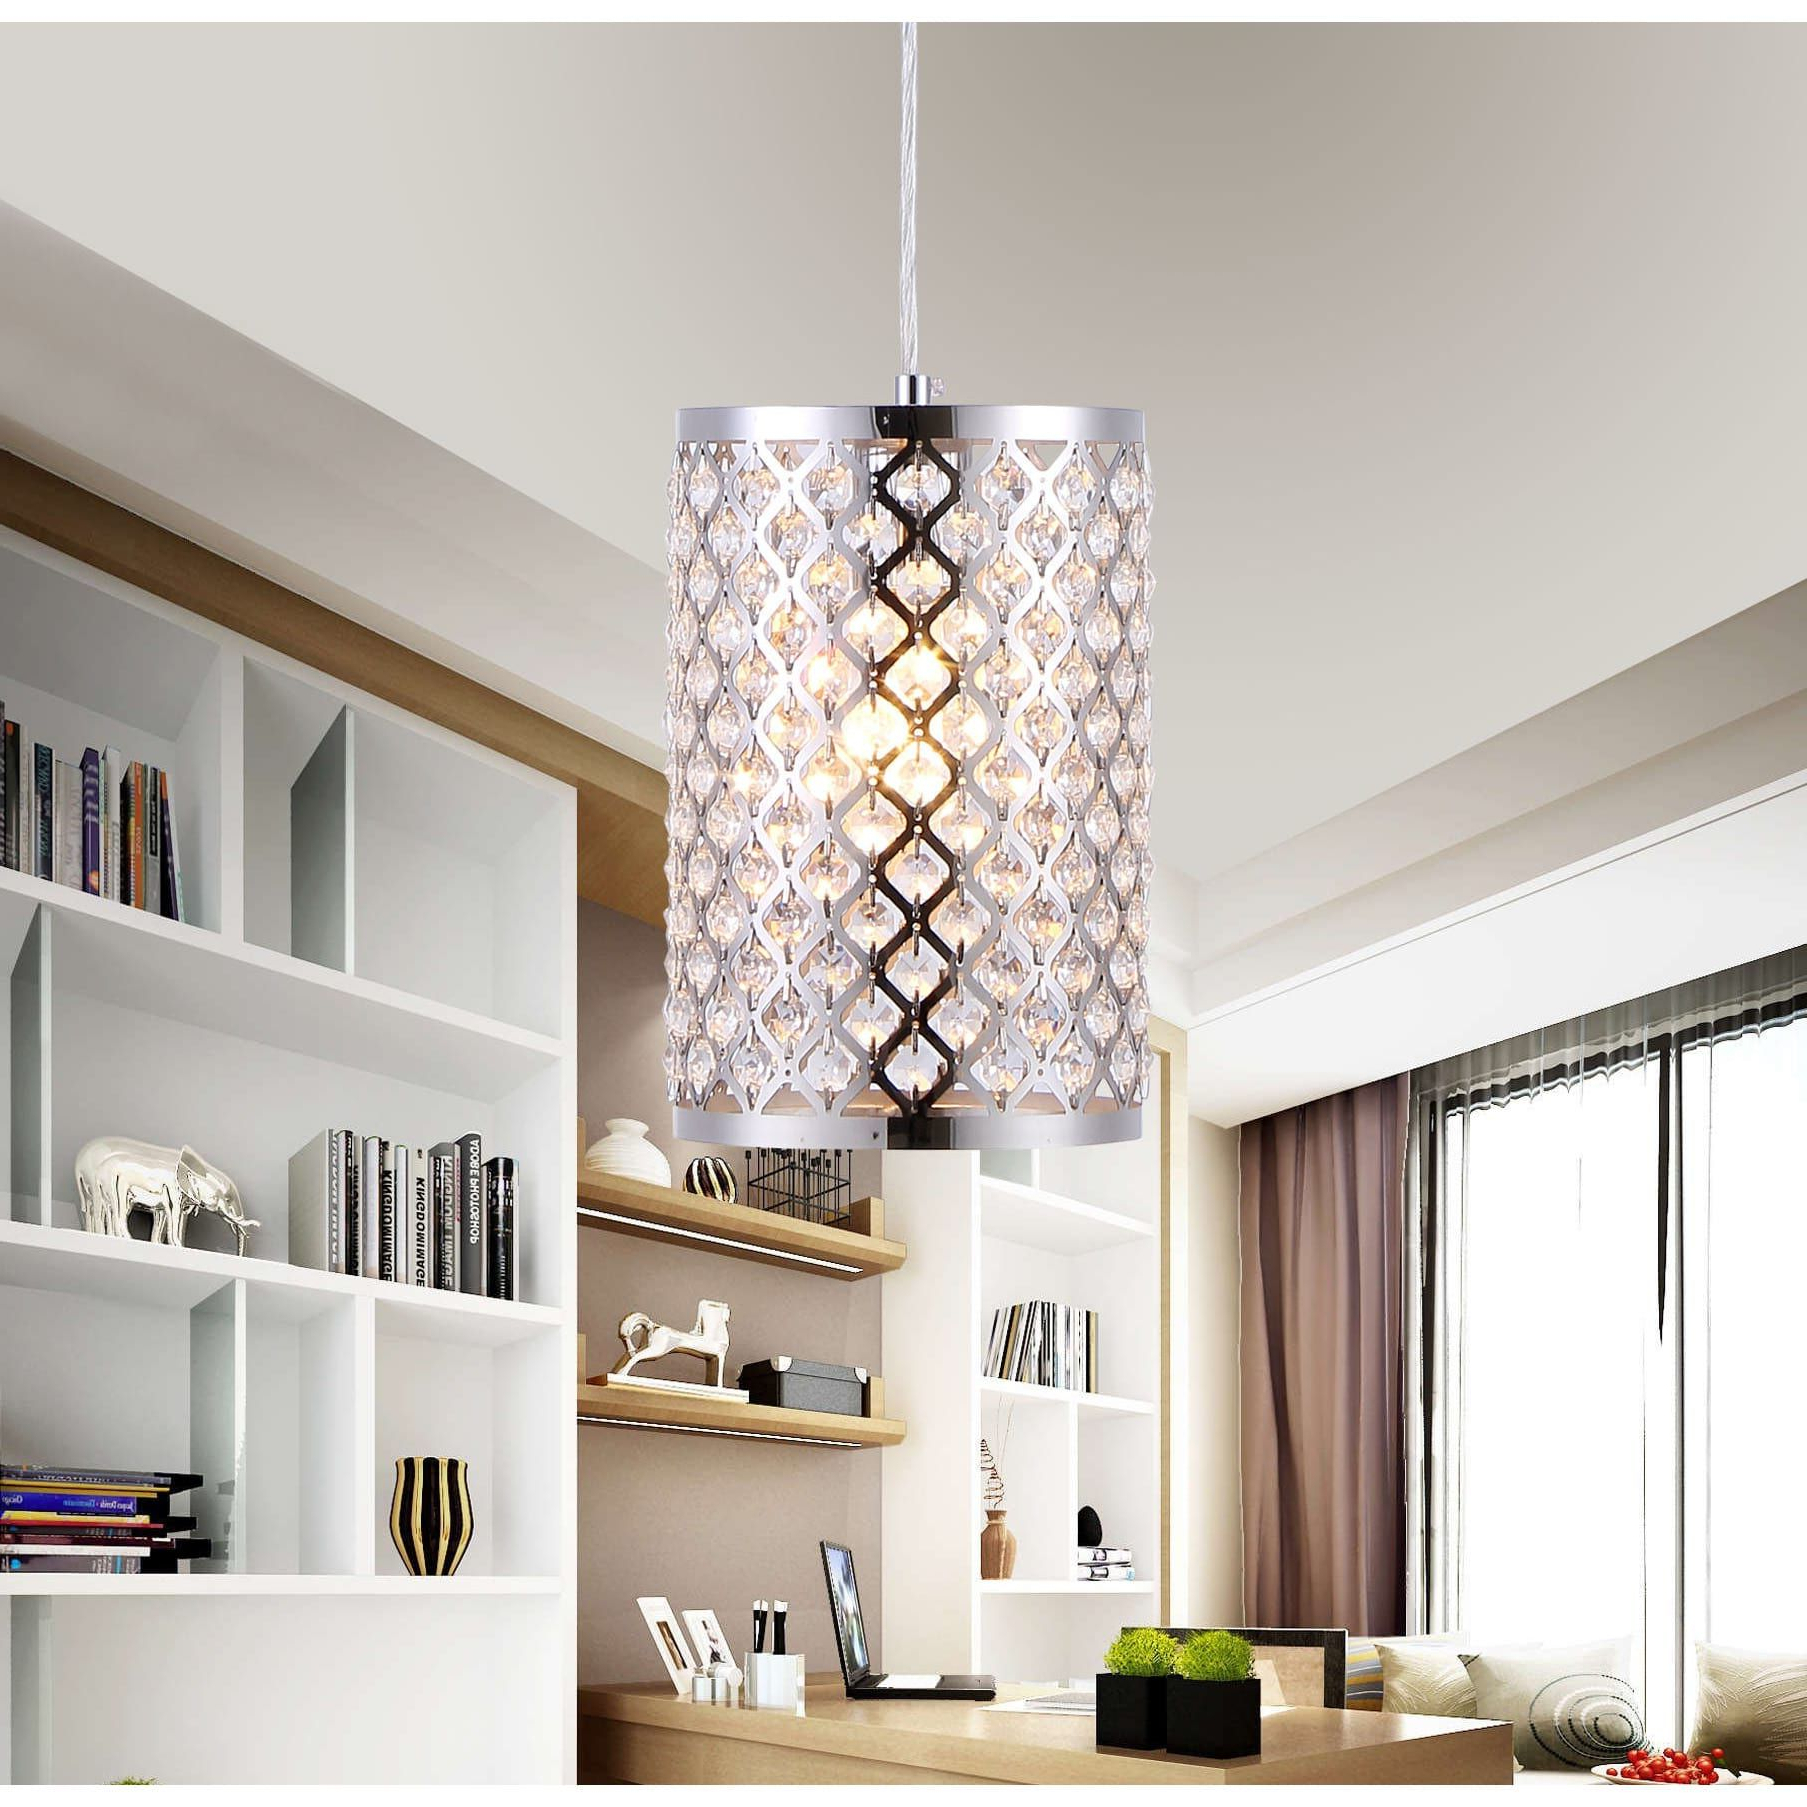 Pinterest – Пинтерест Within Most Recent Hurst 1 Light Single Cylinder Pendants (View 16 of 20)